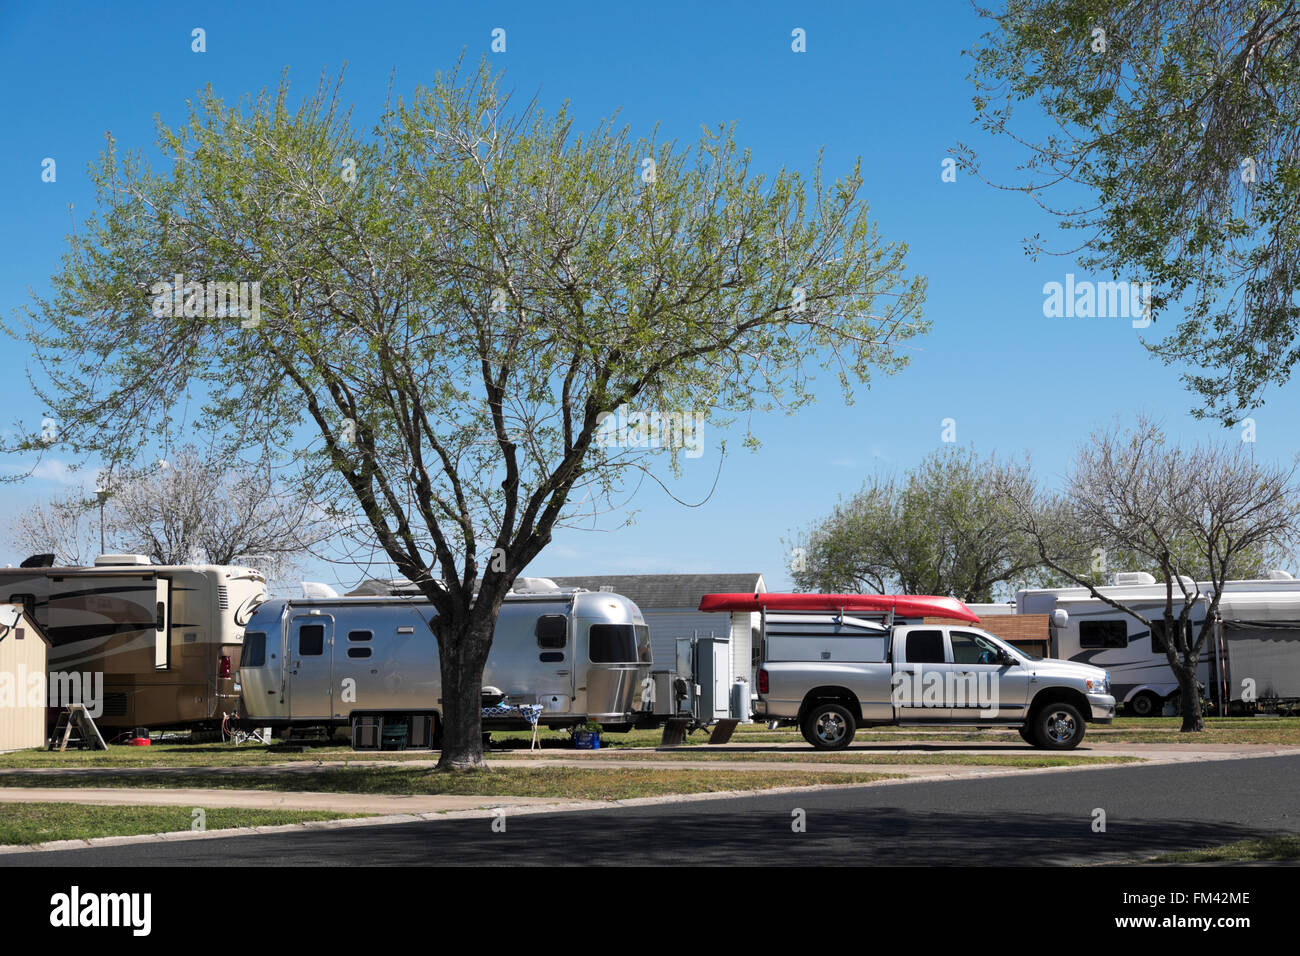 residential site at an RV resort in Alamo, Texas - Stock Image